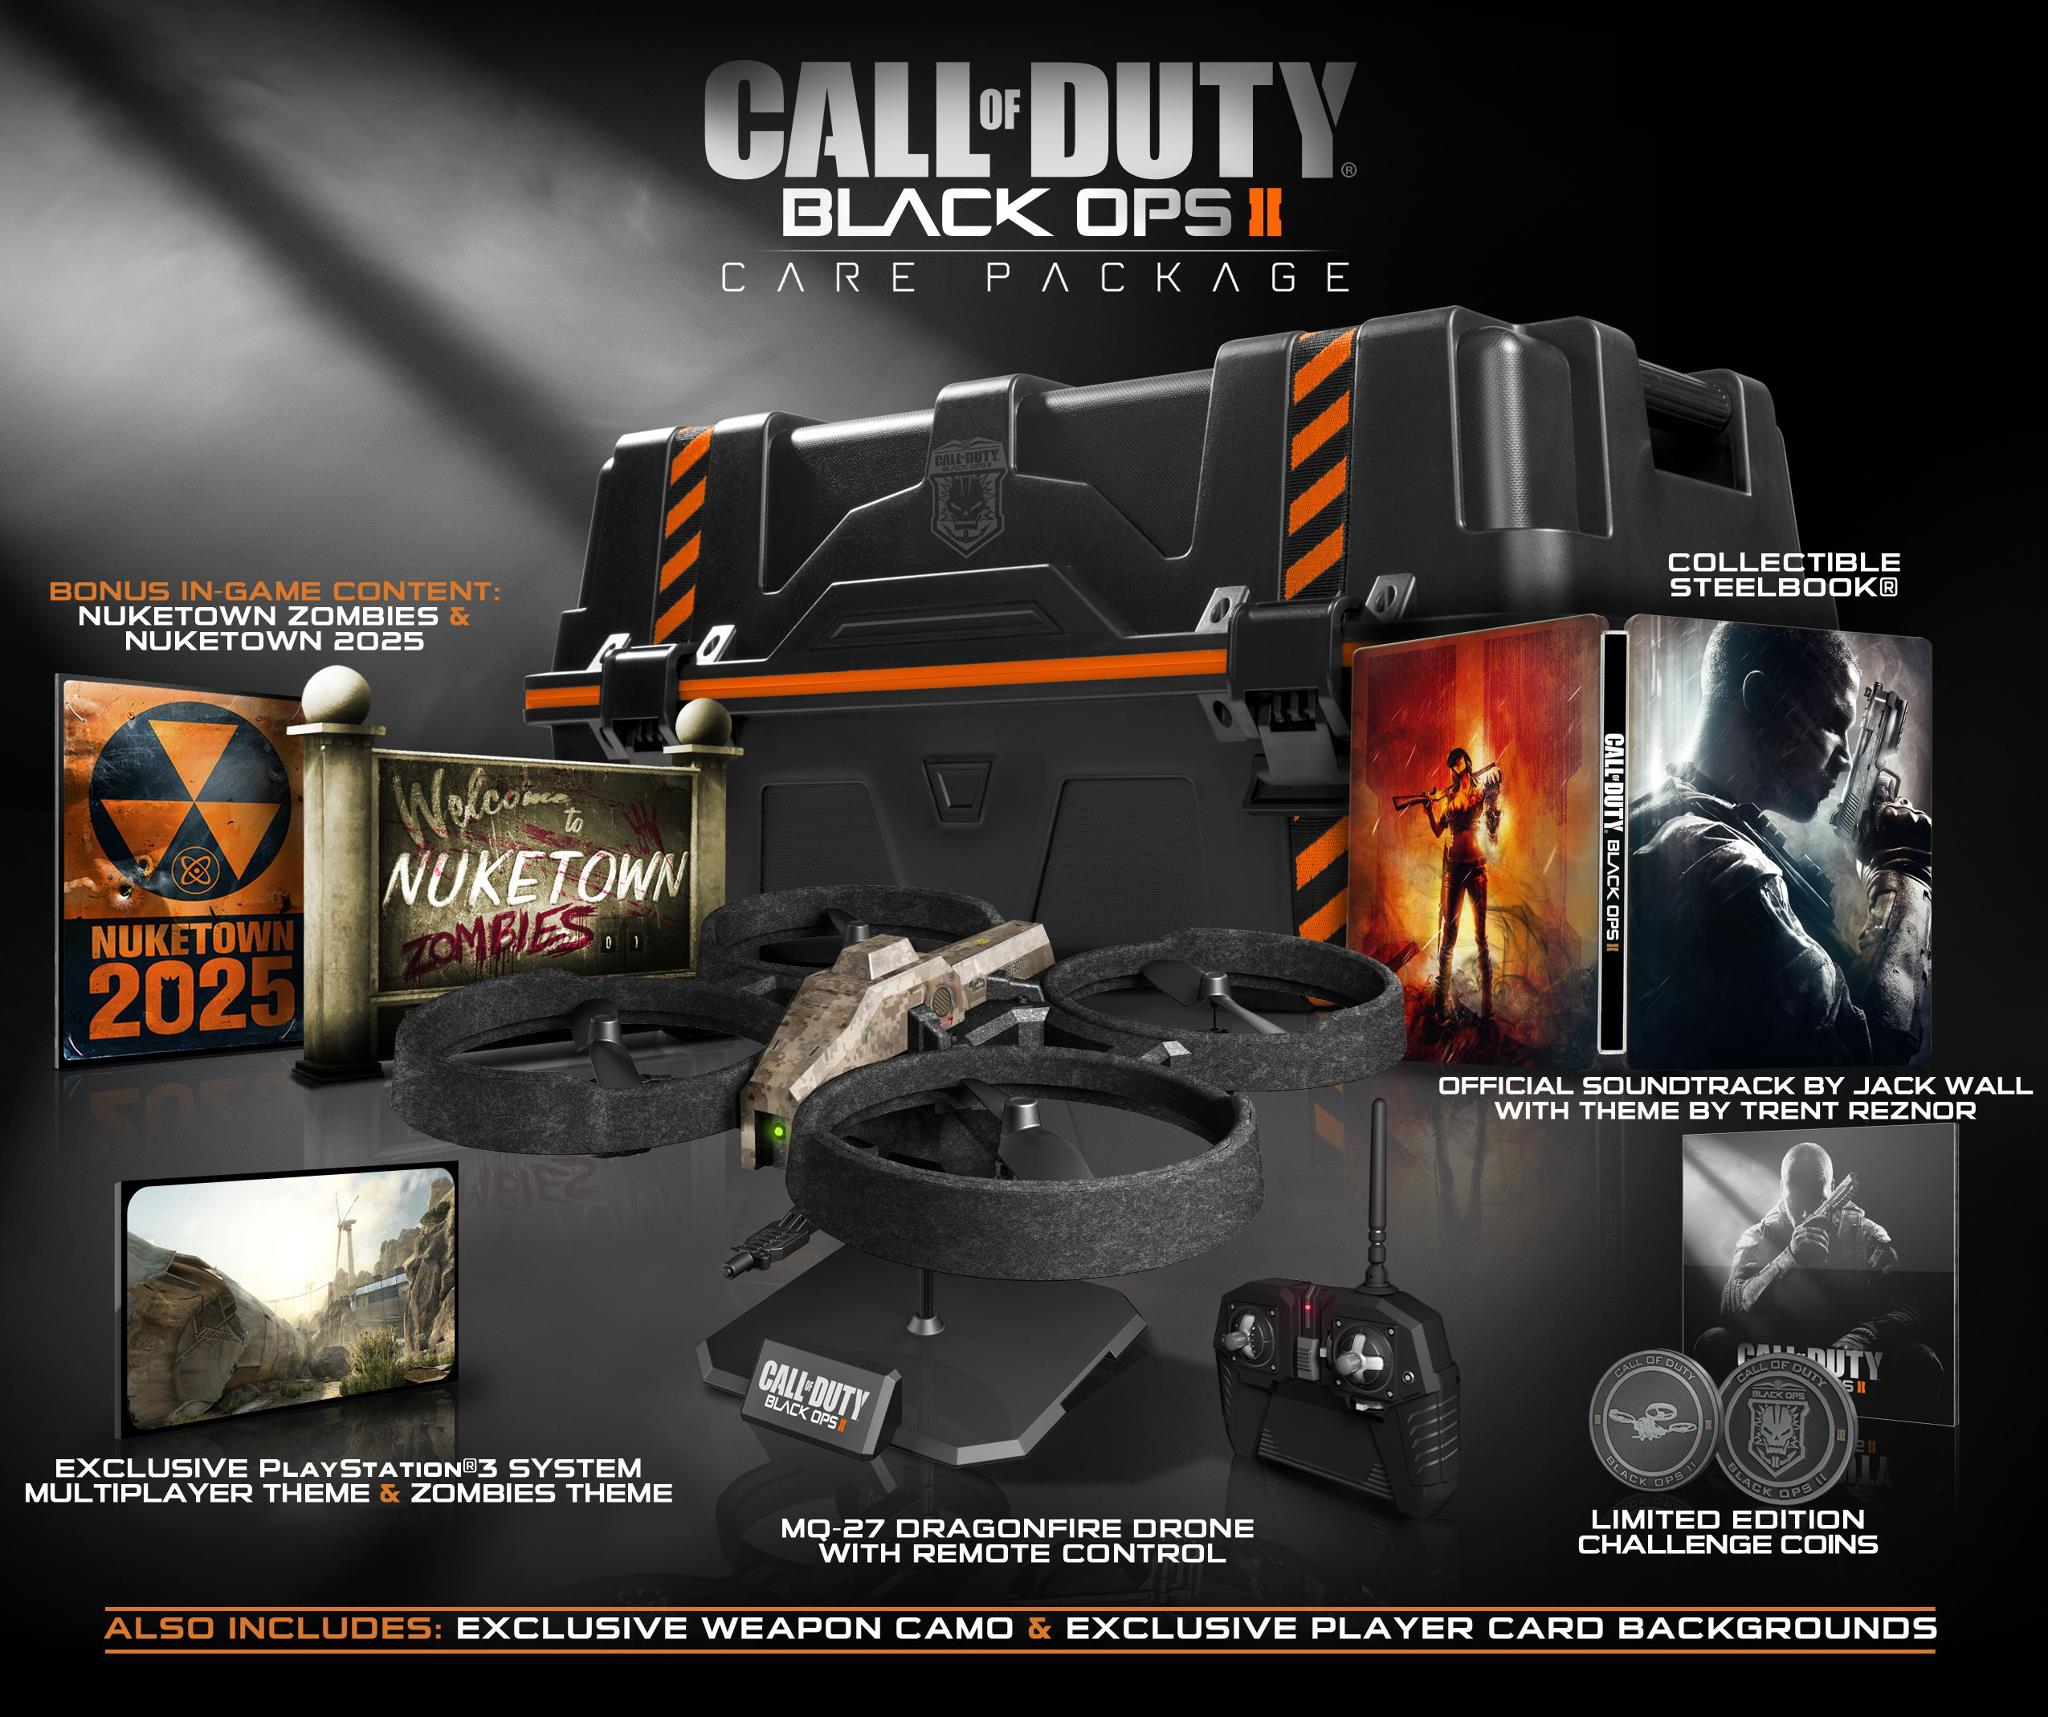 Call Of Duty Black Ops 2 Wallpaper: Call Of Duty Black Ops II Prestige Edition, Care Pack